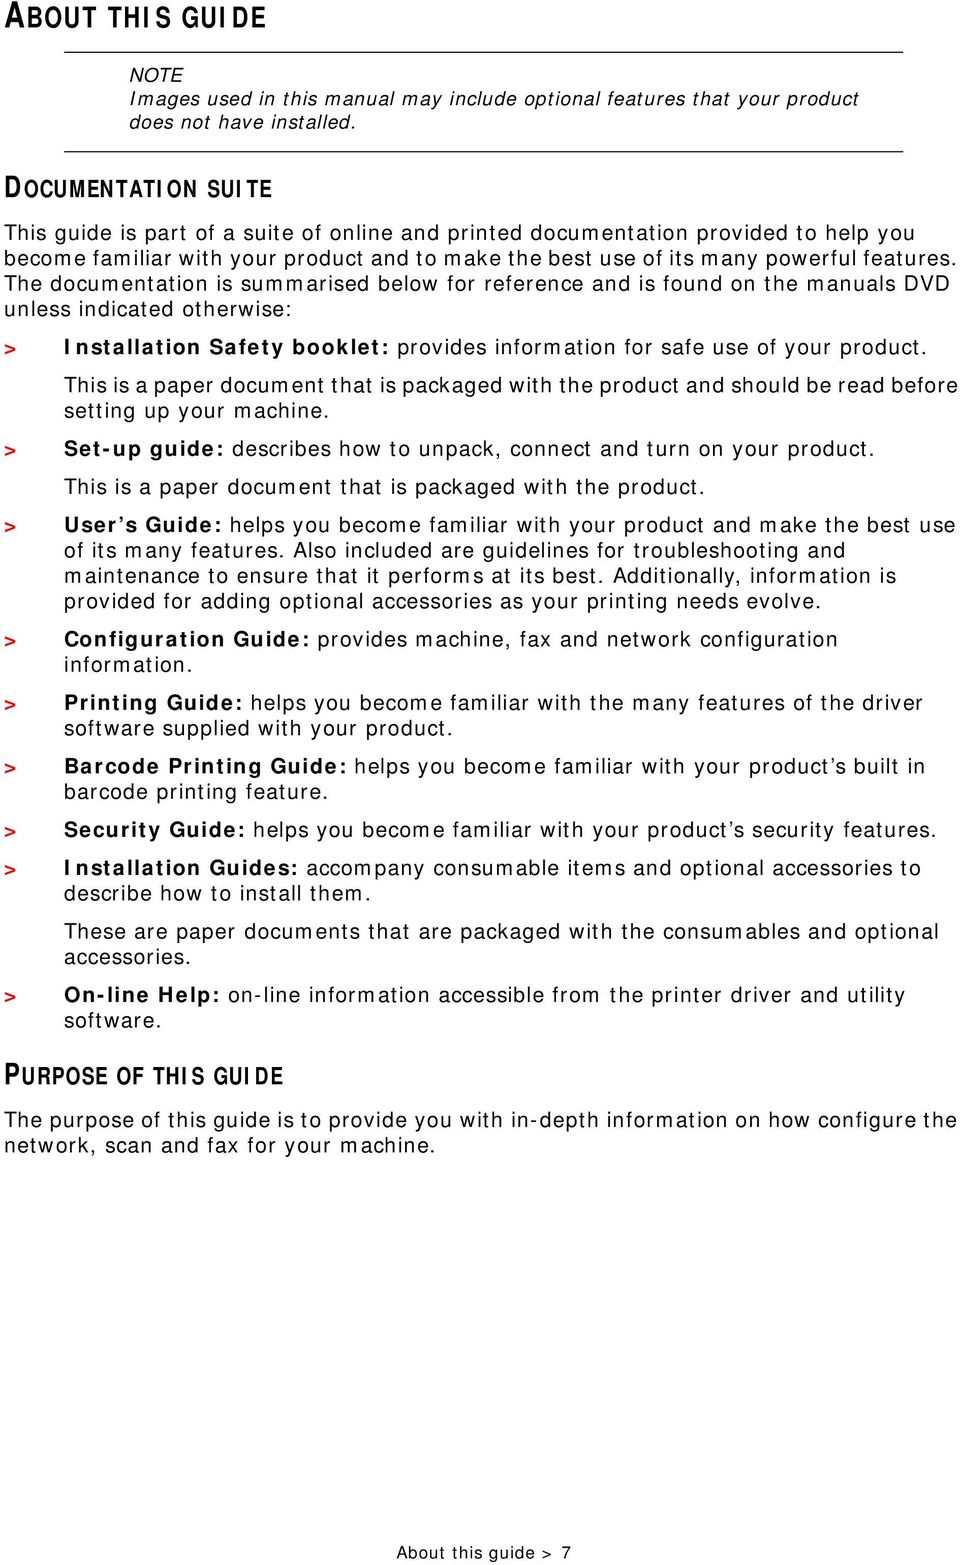 The documentation is summarised below for reference and is found on the manuals DVD unless indicated otherwise: > Installation Safety booklet: provides information for safe use of your product.